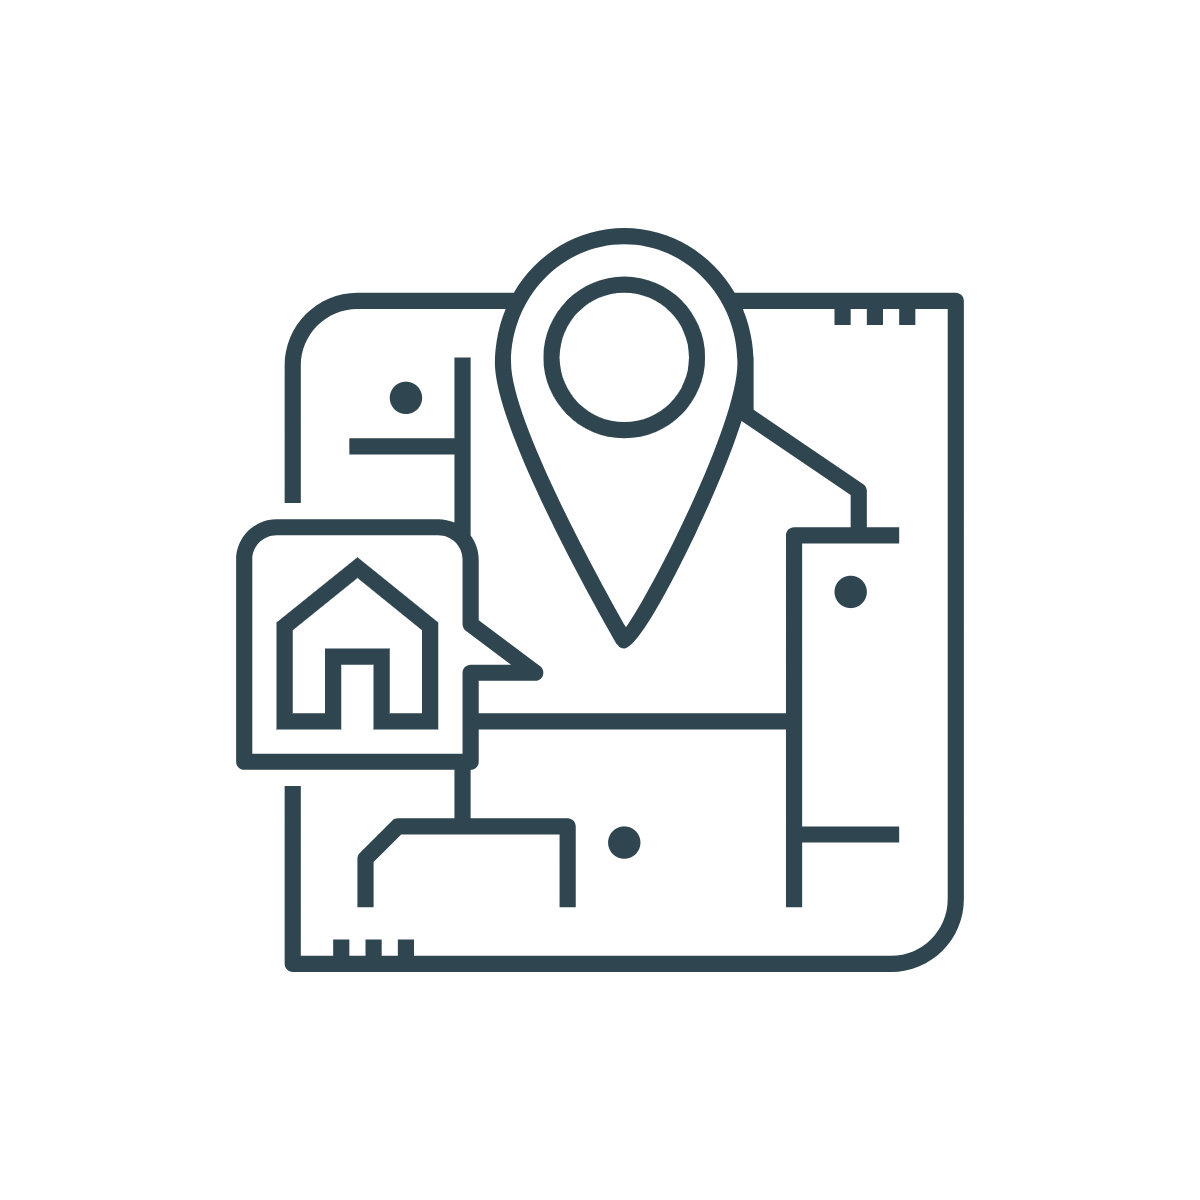 icon of selecting a location for a home